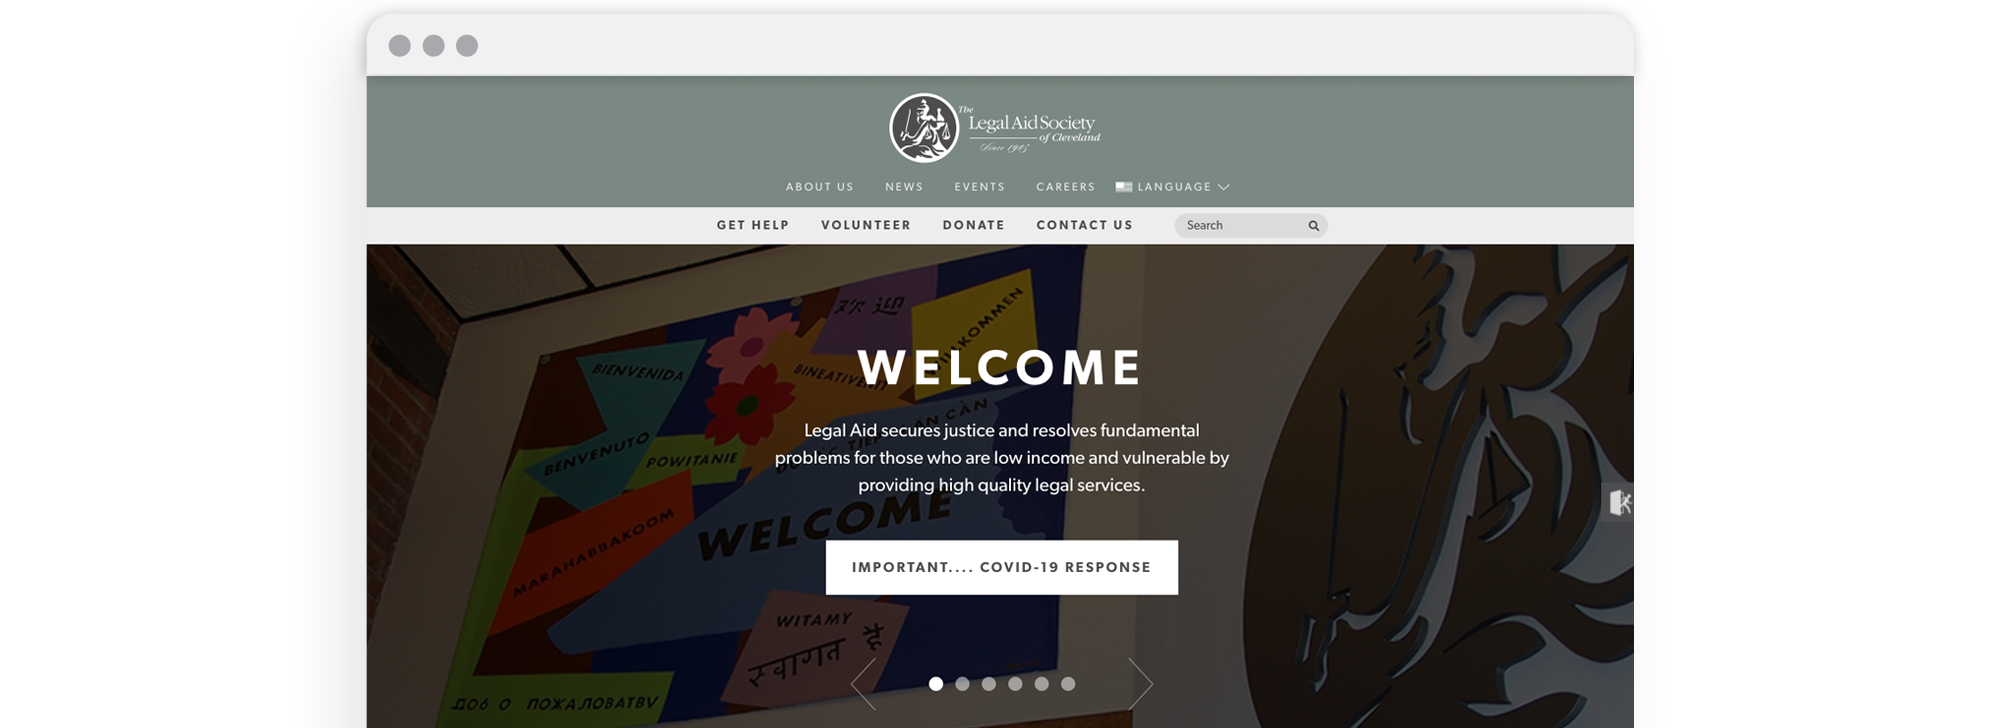 Legal Aid Society of Cleveland Website Design